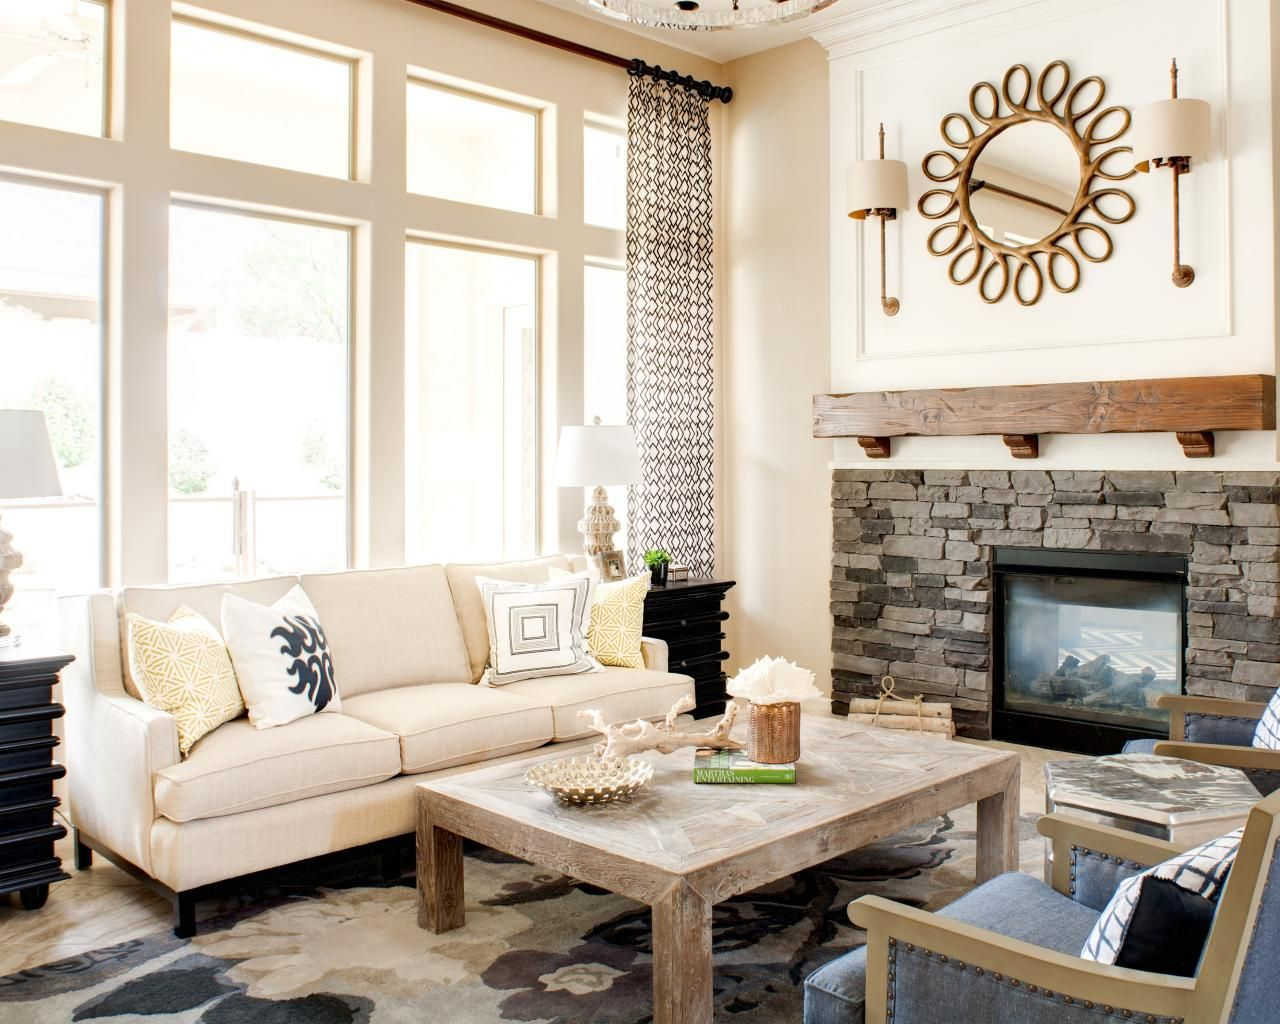 Gray and White Transitional Rustic Living Room With Fireplace ...